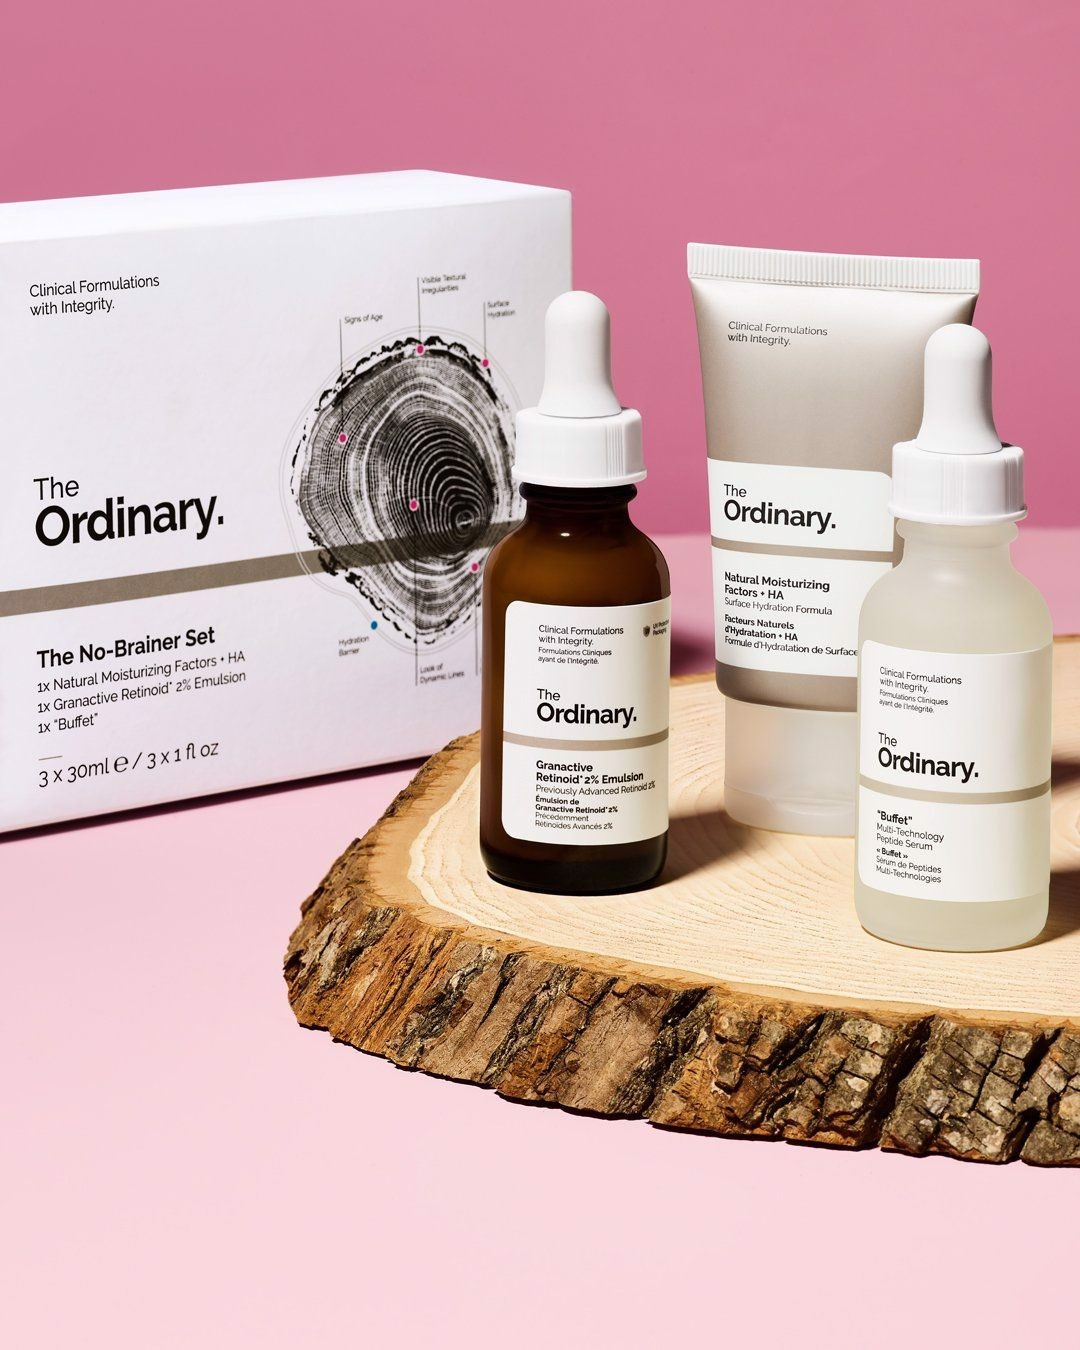 Bộ chăm sóc da The Ordinary The No-Brainer